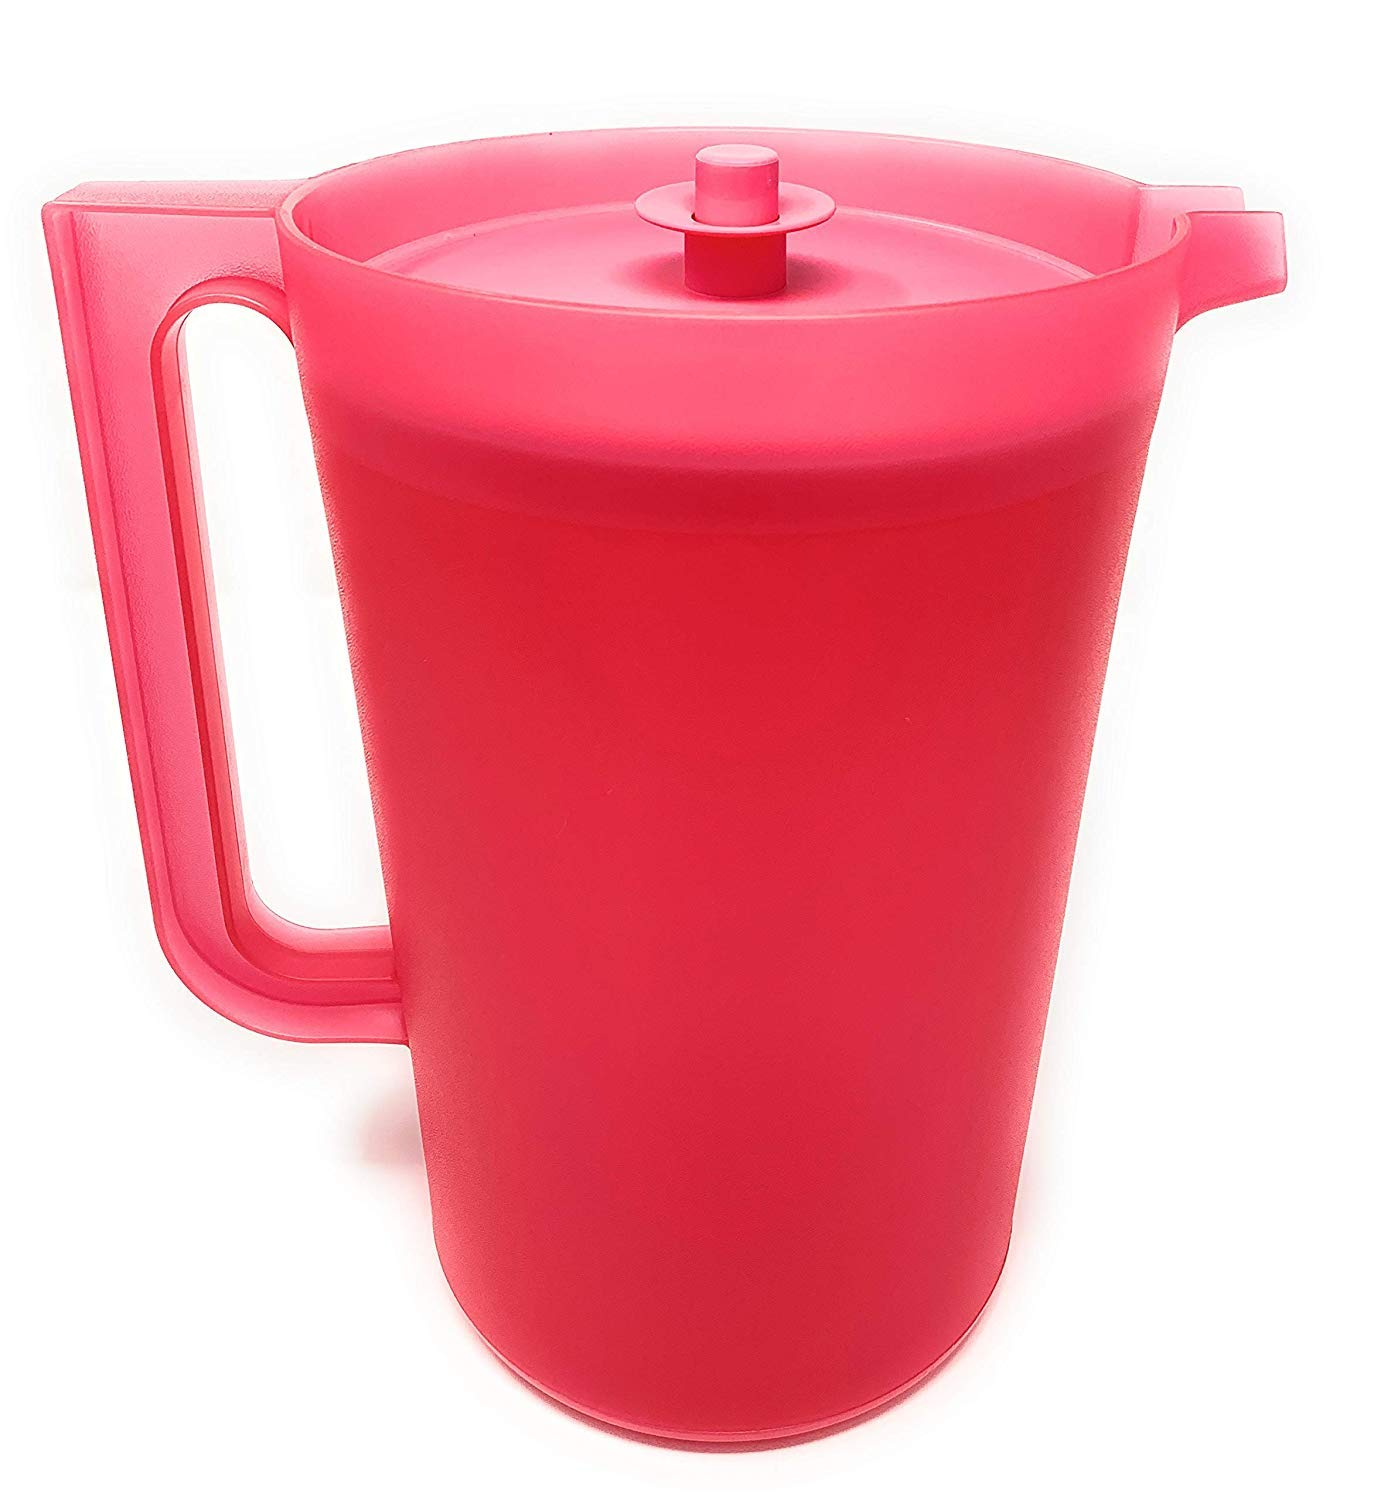 Tupperware New One Gallon Pitcher in Pink with Push Button Seal